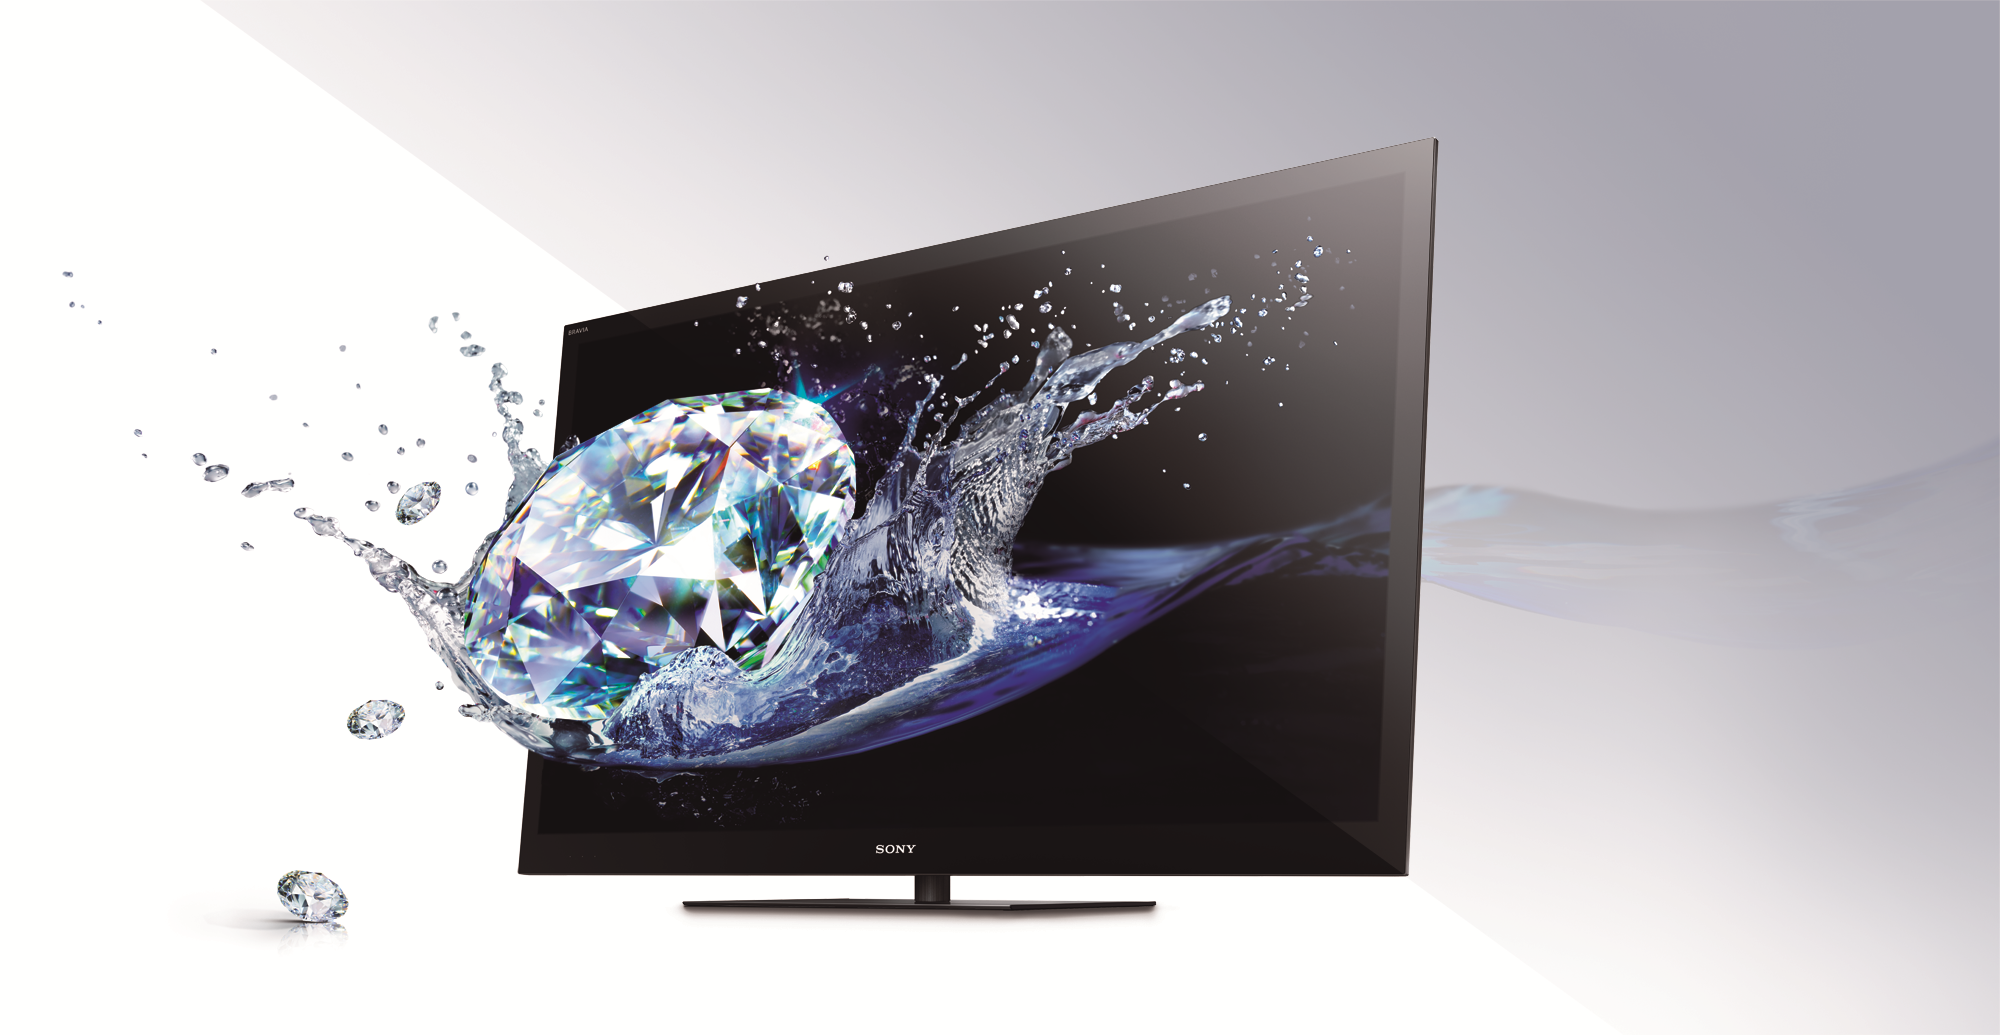 sony xbr tv with diamond popping out